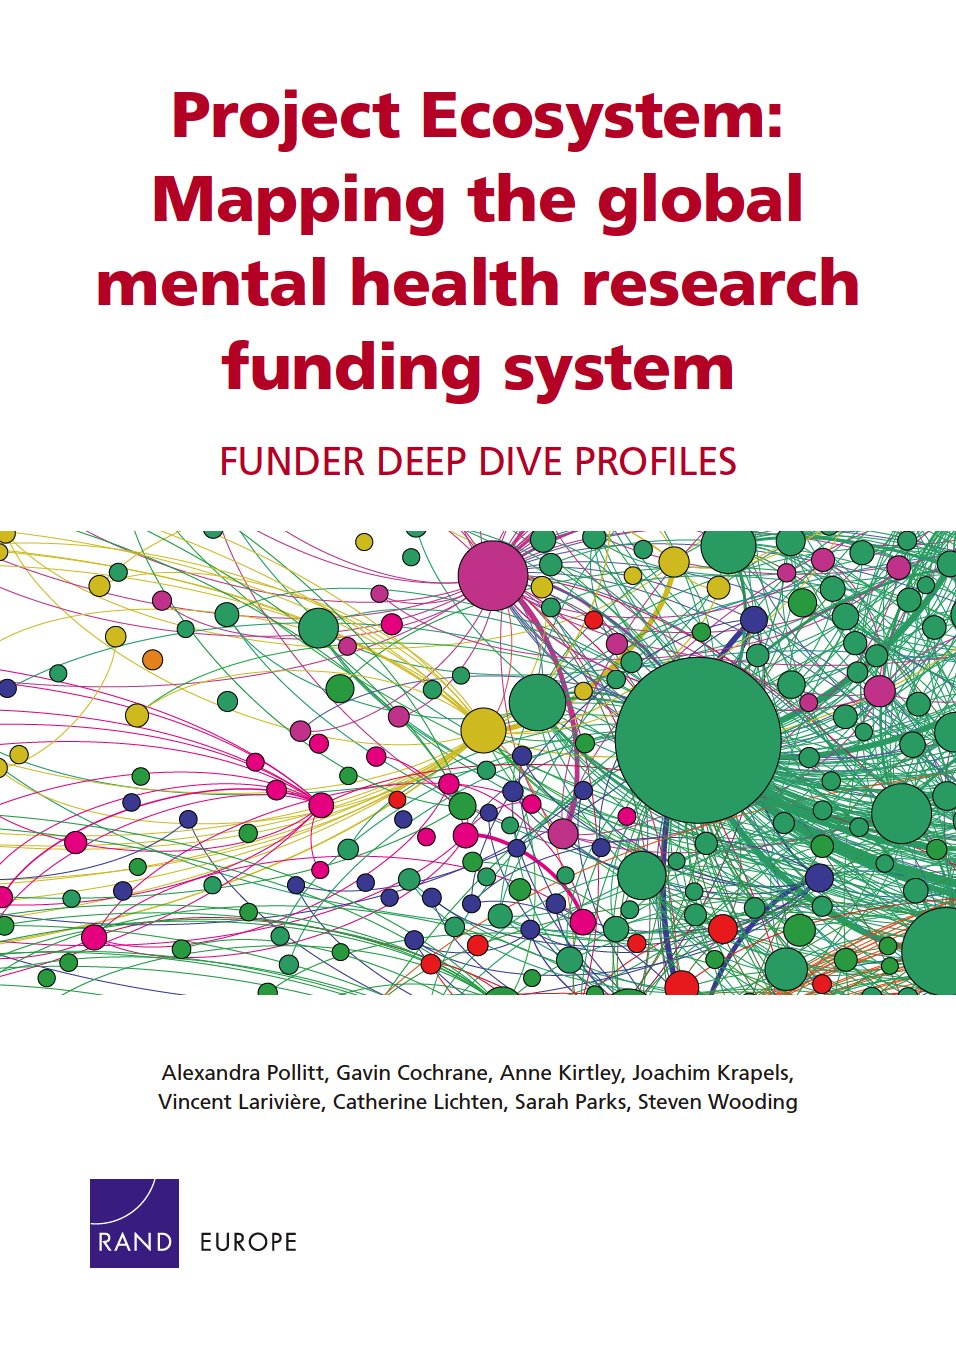 In-depth profiles of 32 global #mentalhealth #research funders reveal practices & plans https://t.co/5yFbDHu3AO 1of2 https://t.co/NCMPSbuaVg